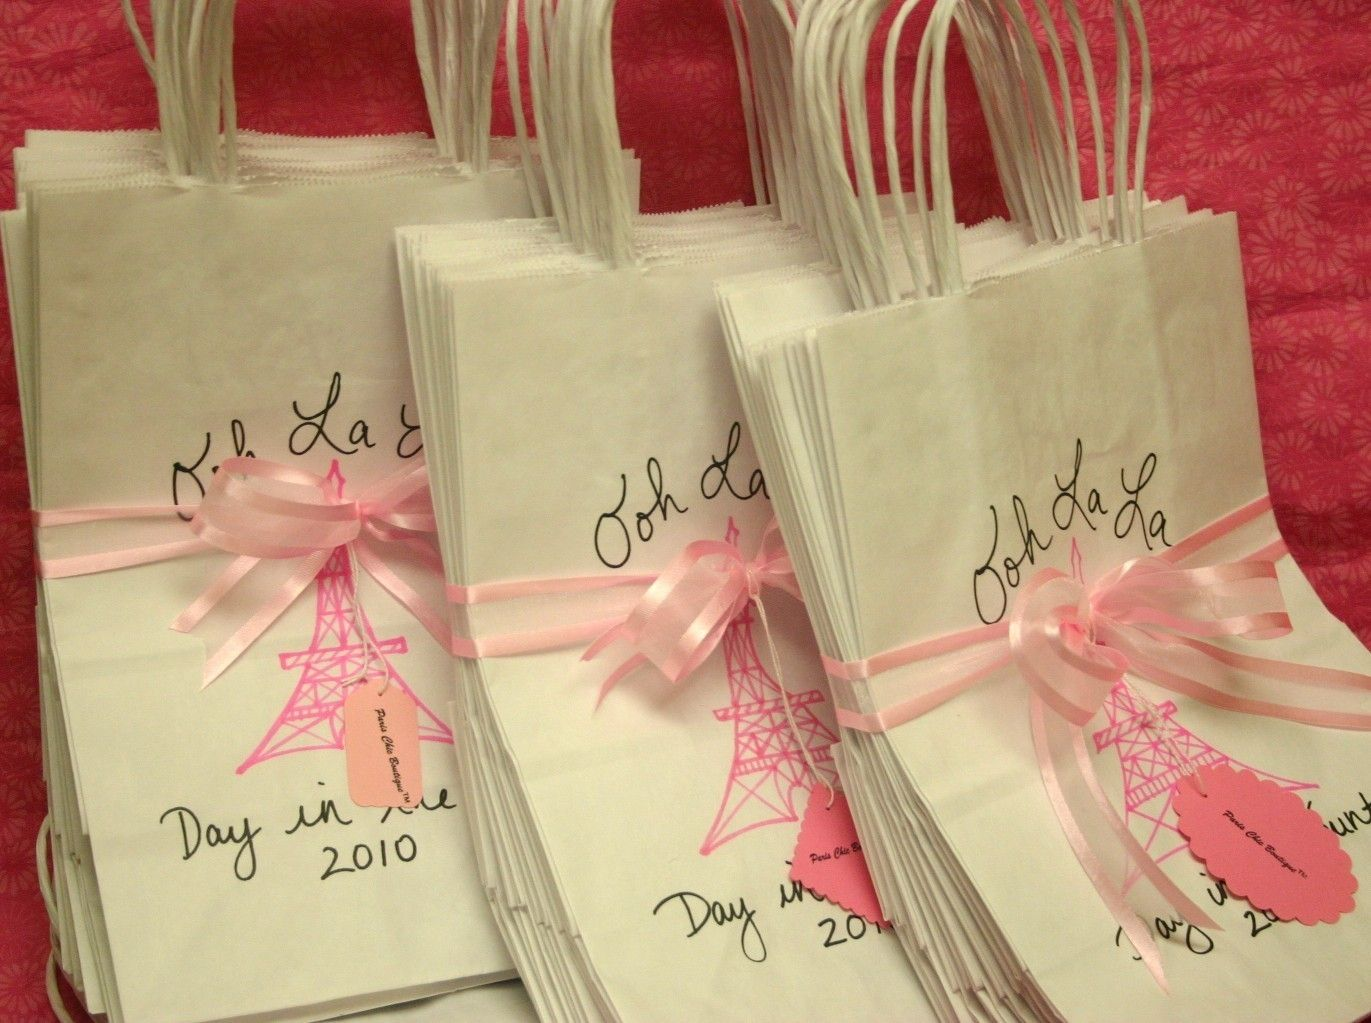 Parisian Theme Party Favors Personalized Paris Themed Favor Bags Eiffel Tower